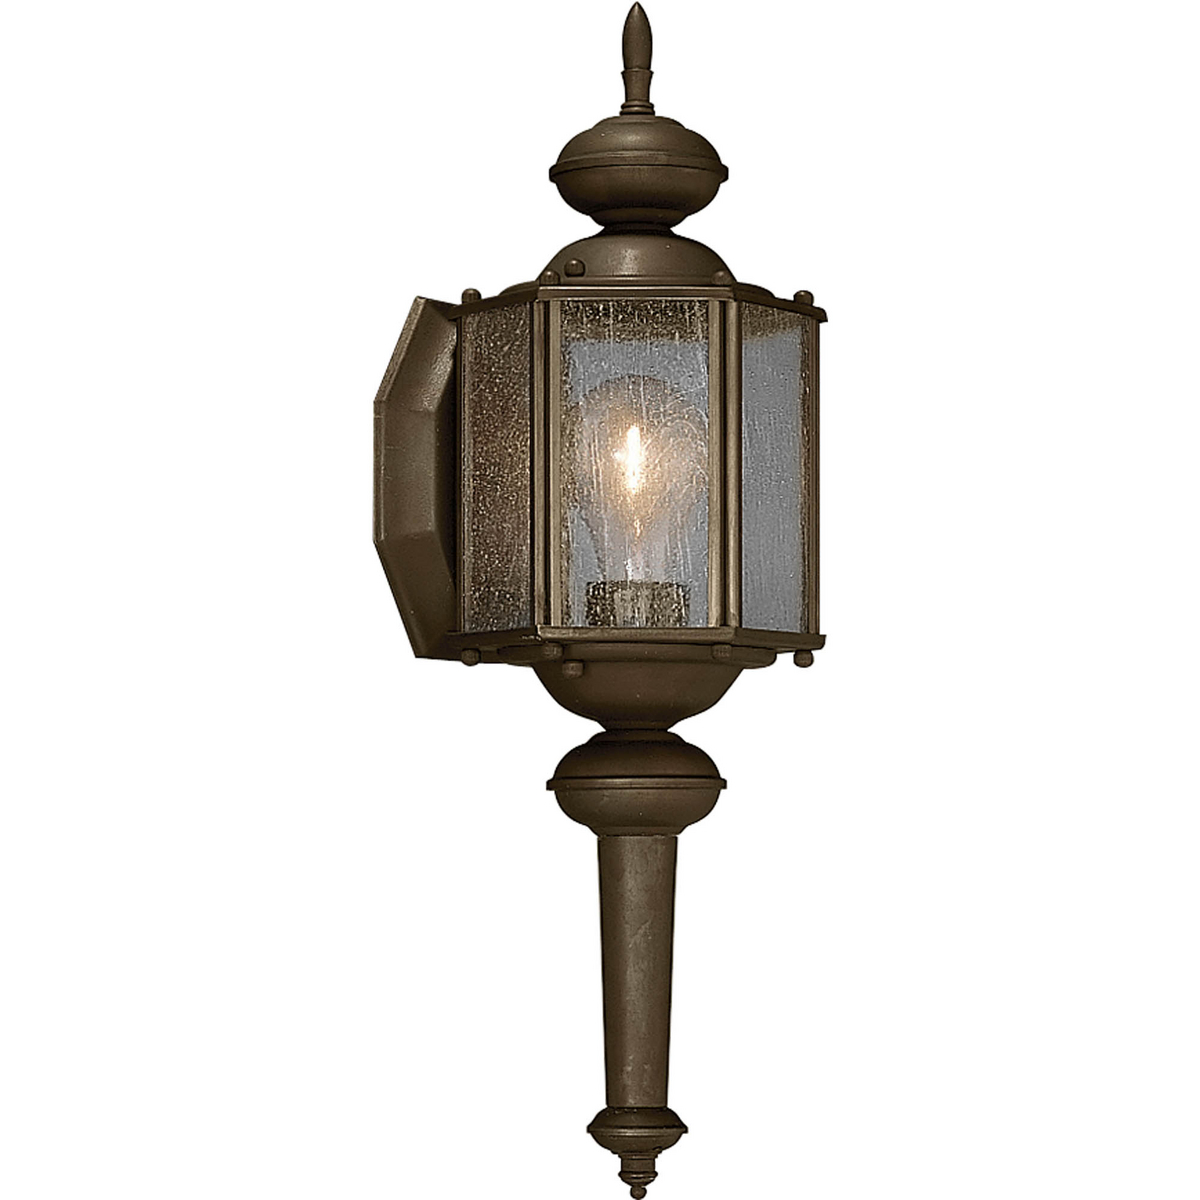 PRO P5773-20 1X100M Antique Bronze Clear Seeded Glass Wall Lantern